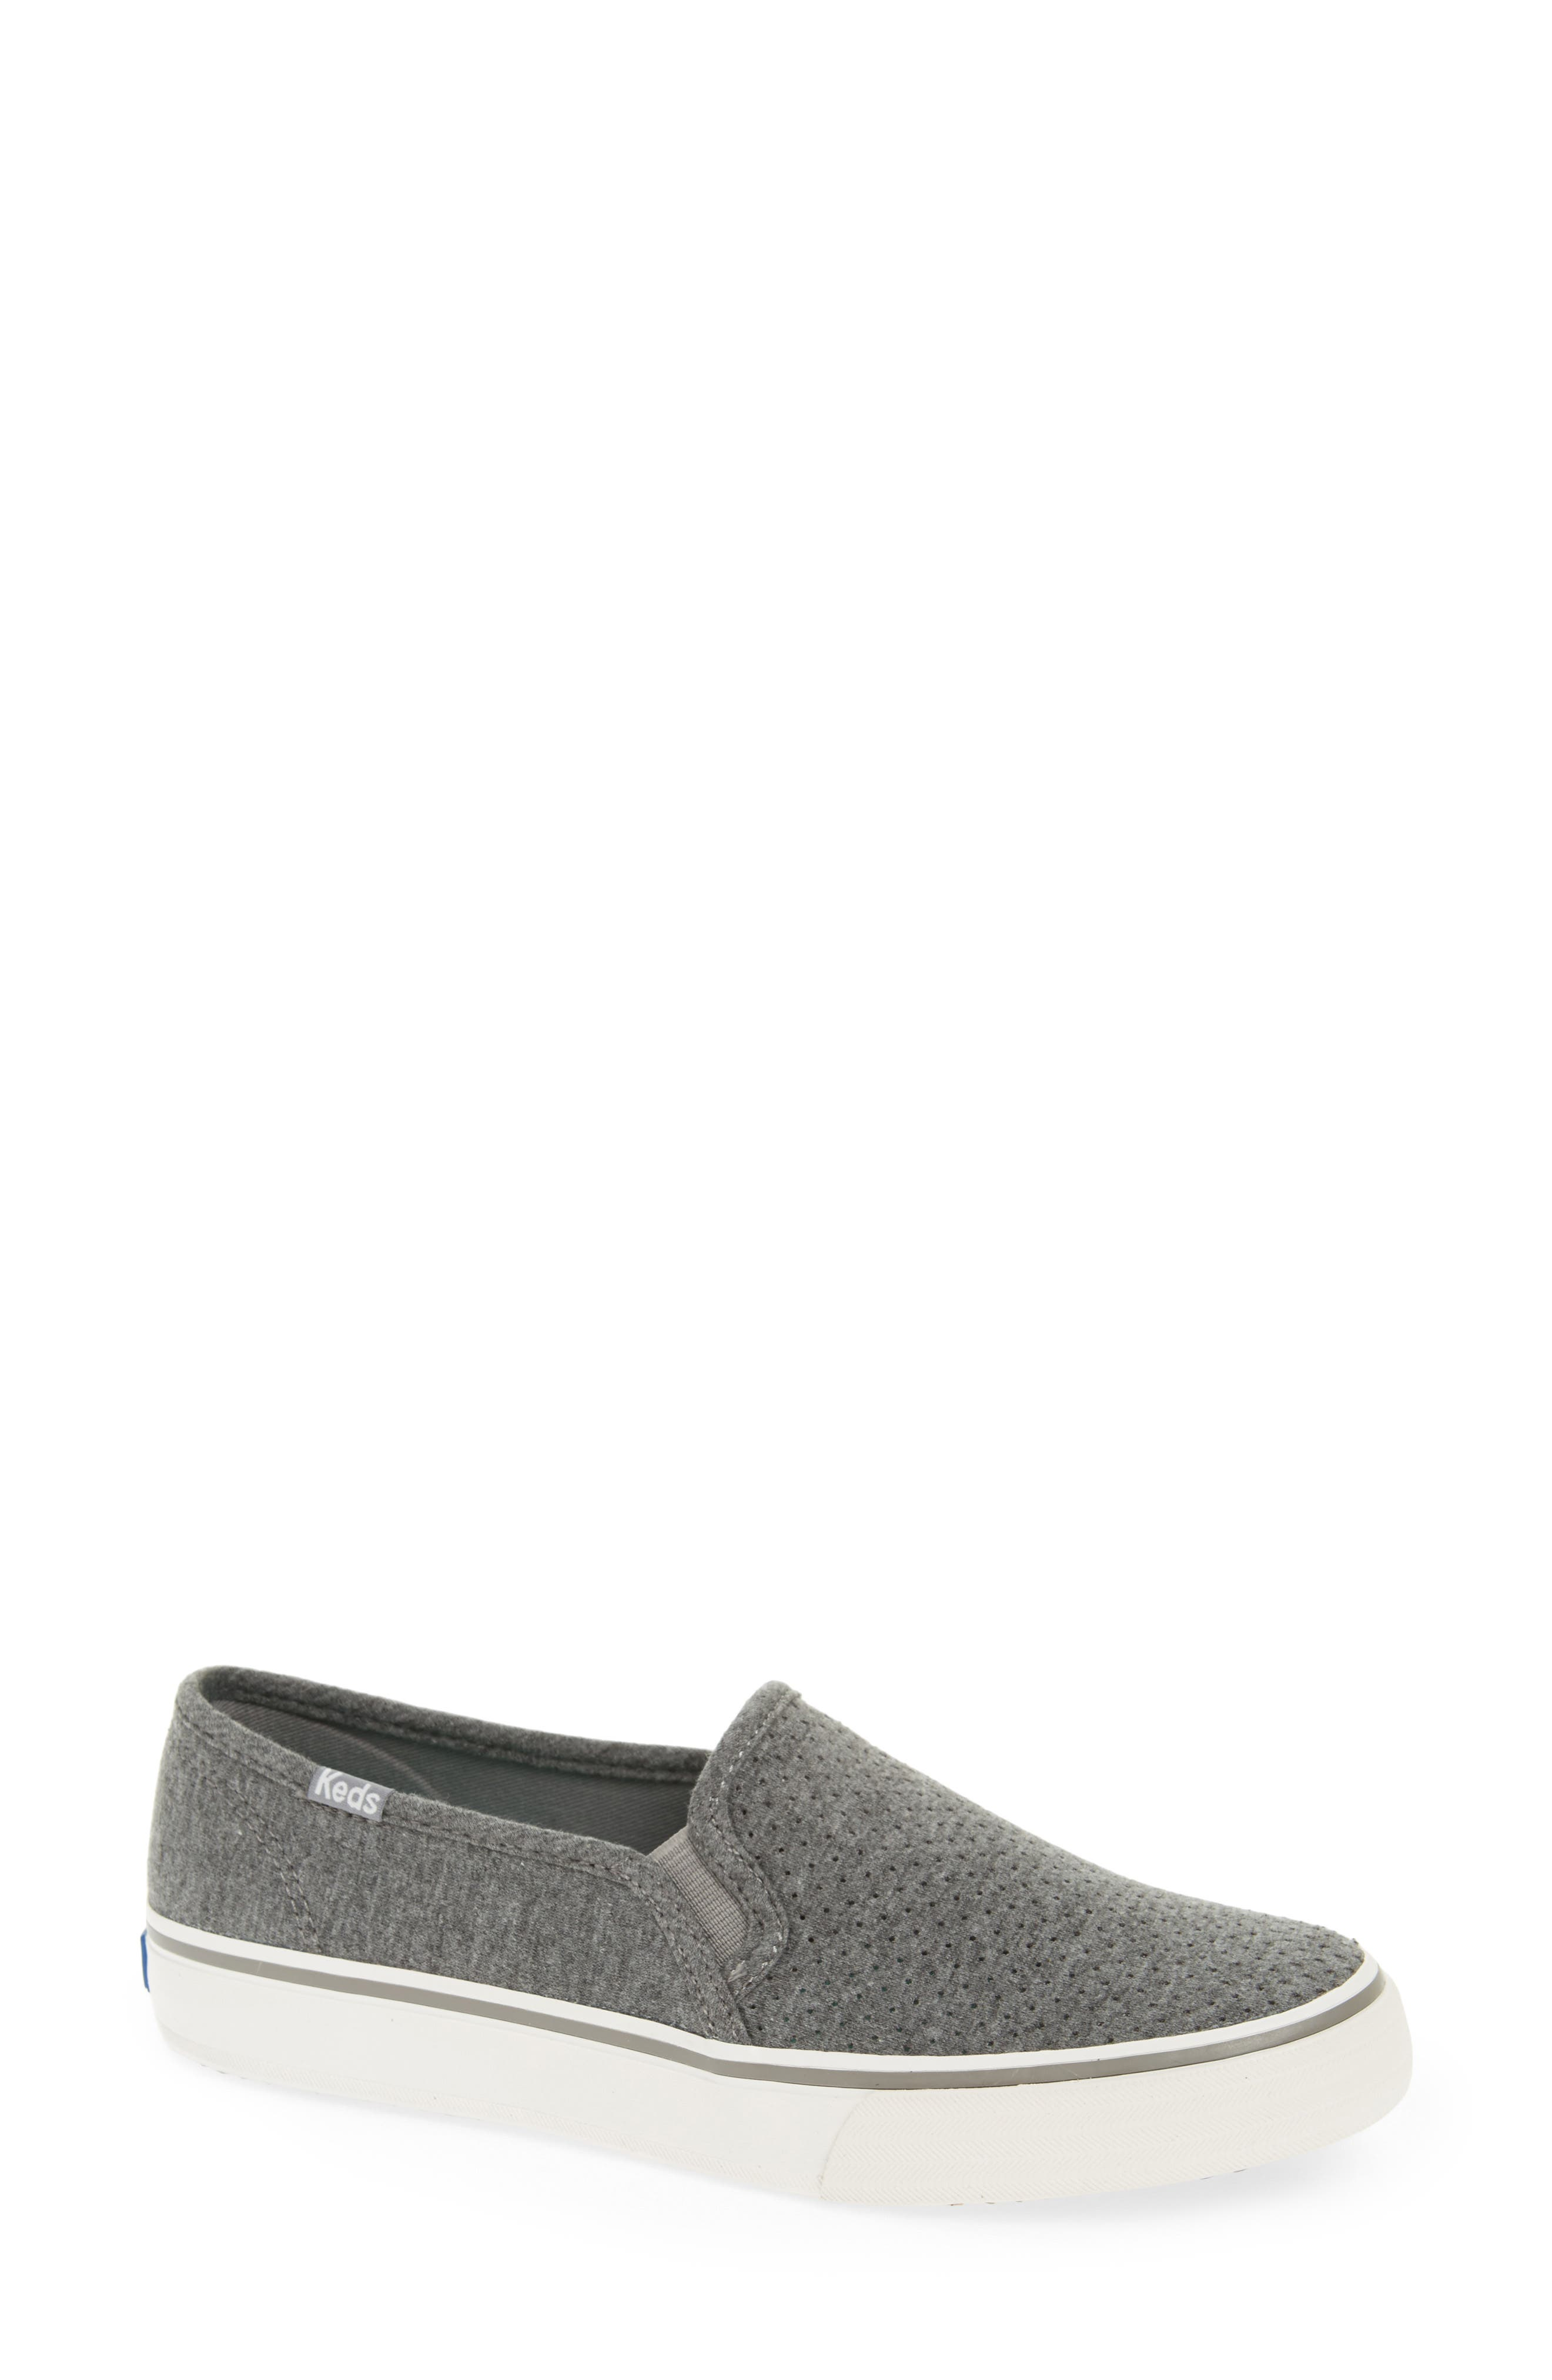 Double Decker Perforated Slip-On Sneaker,                         Main,                         color, Charcoal